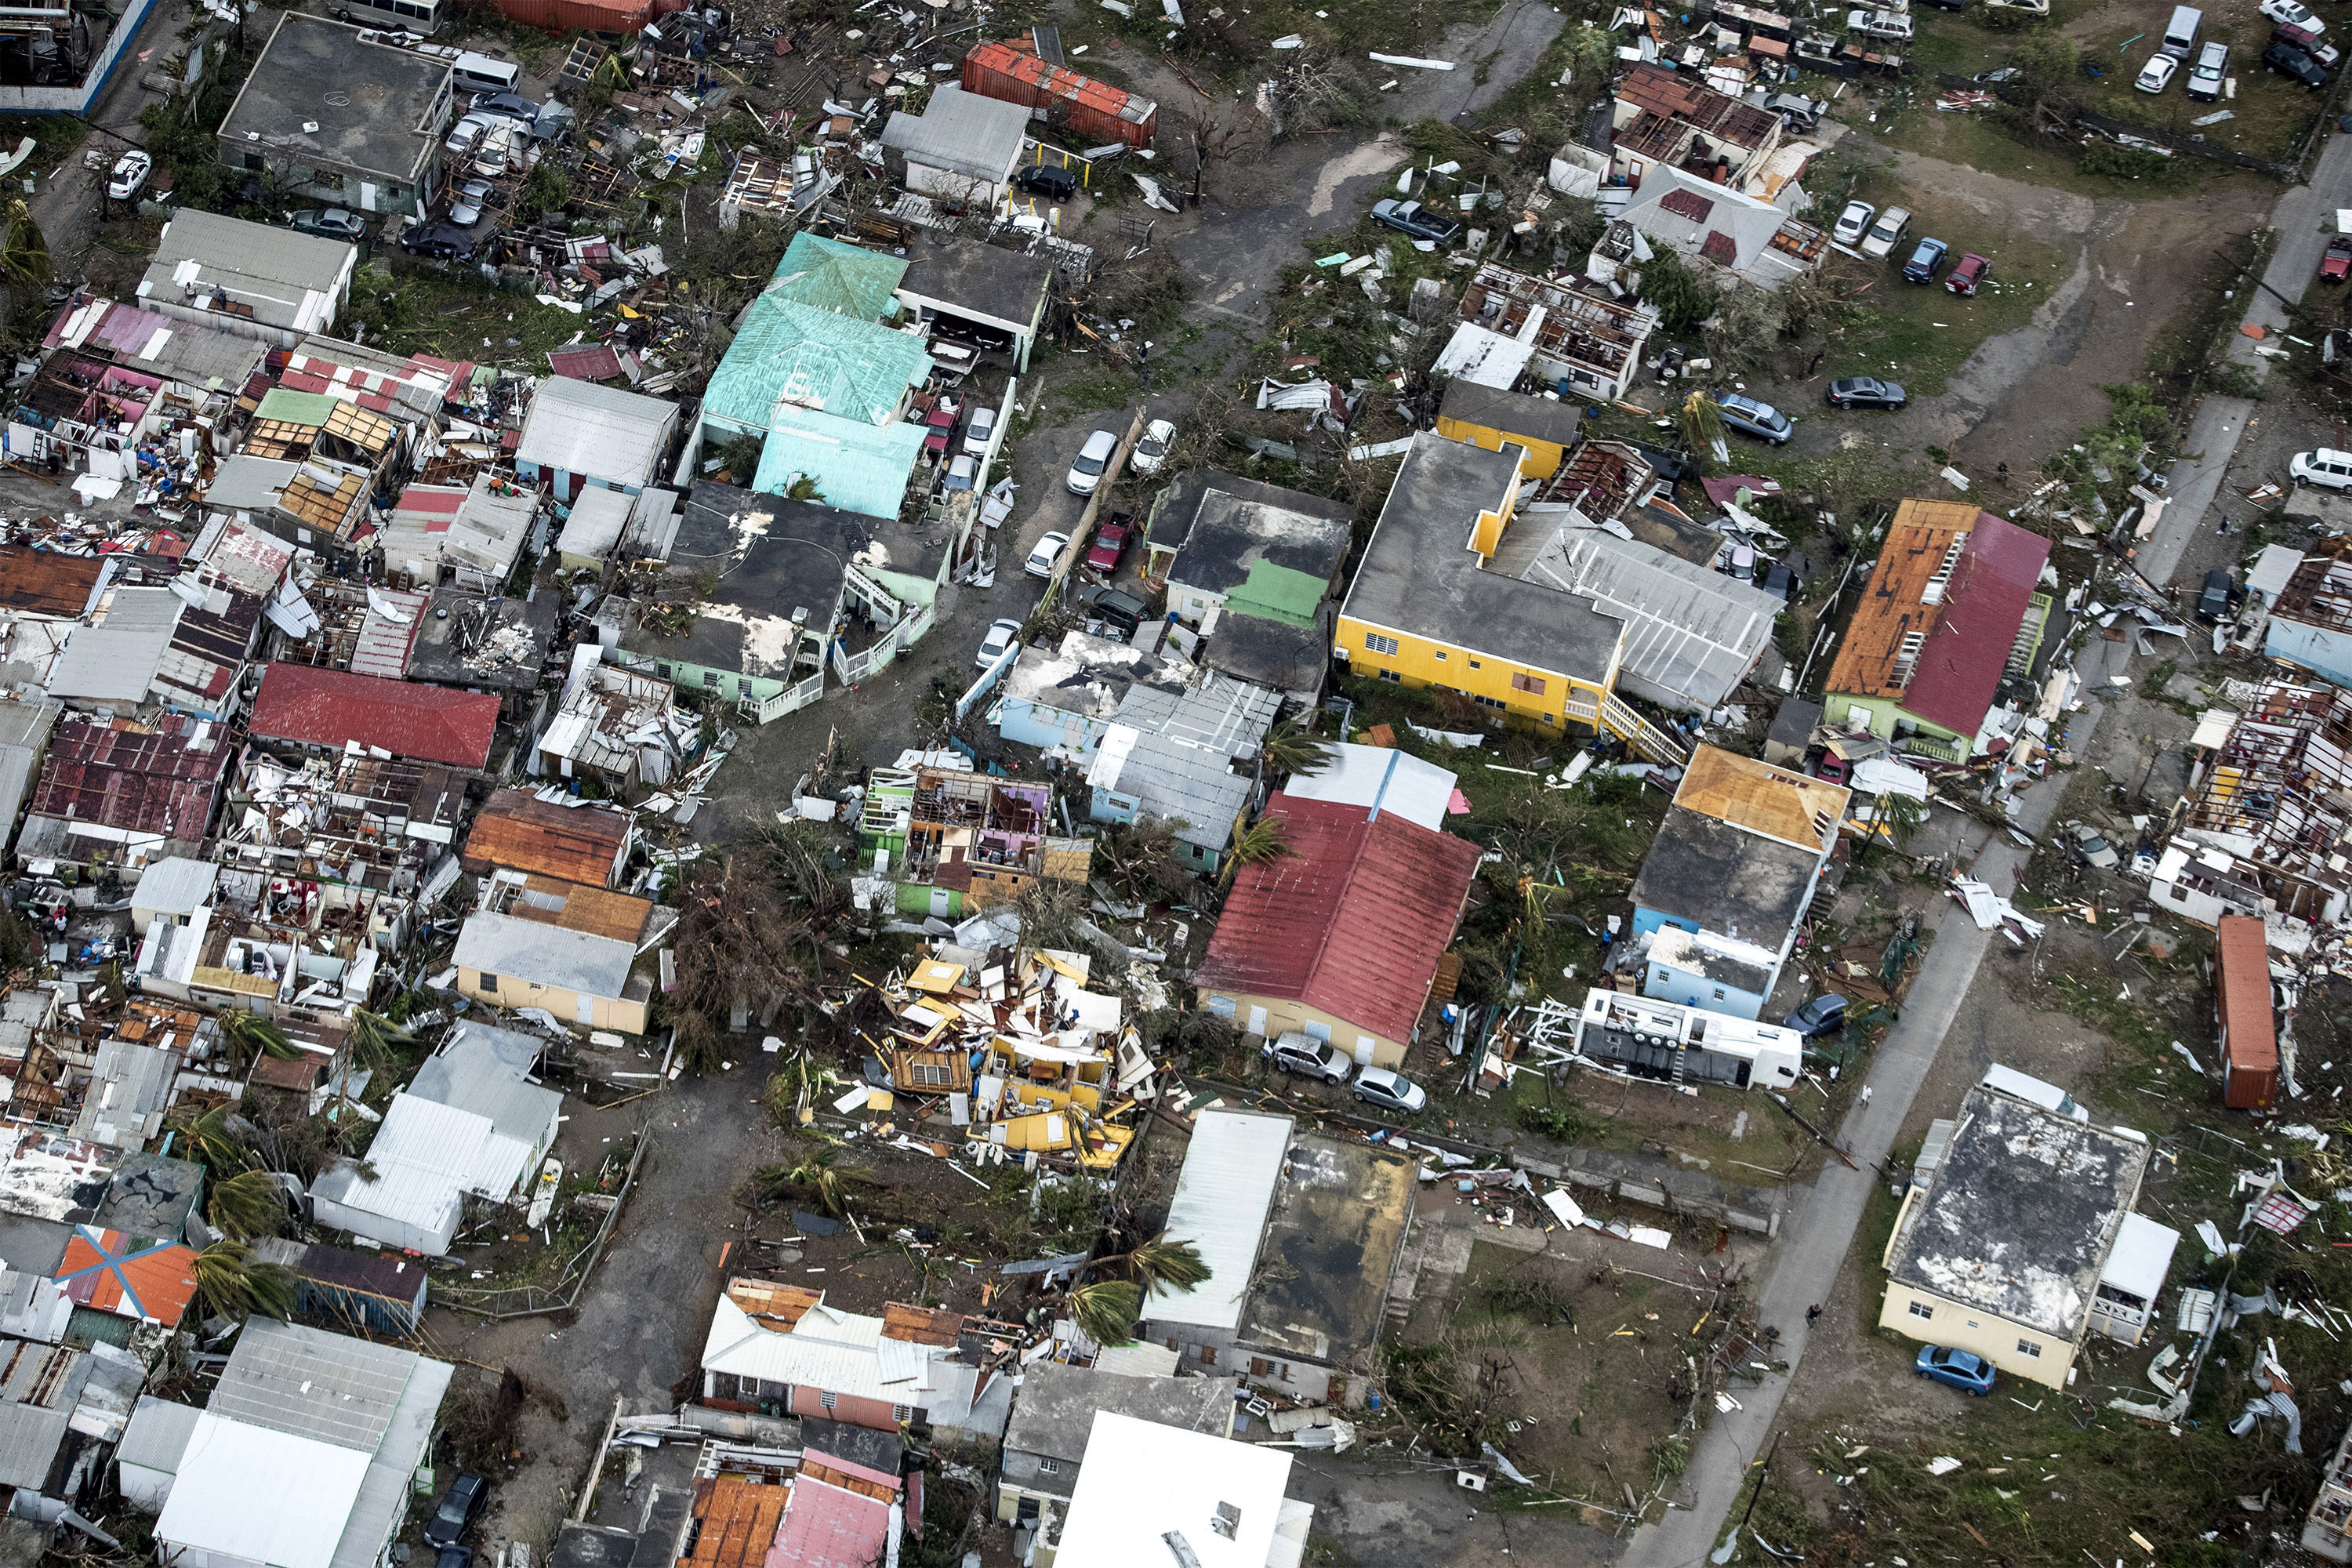 "<div class=""meta image-caption""><div class=""origin-logo origin-image none""><span>none</span></div><span class=""caption-text"">This Sept. 6, 2017 photo provided by the Dutch Defense Ministry shows storm damage in the aftermath of Hurricane Irma, in St. Maarten. (Gerben Van Es/Dutch Defense Ministry via AP)</span></div>"